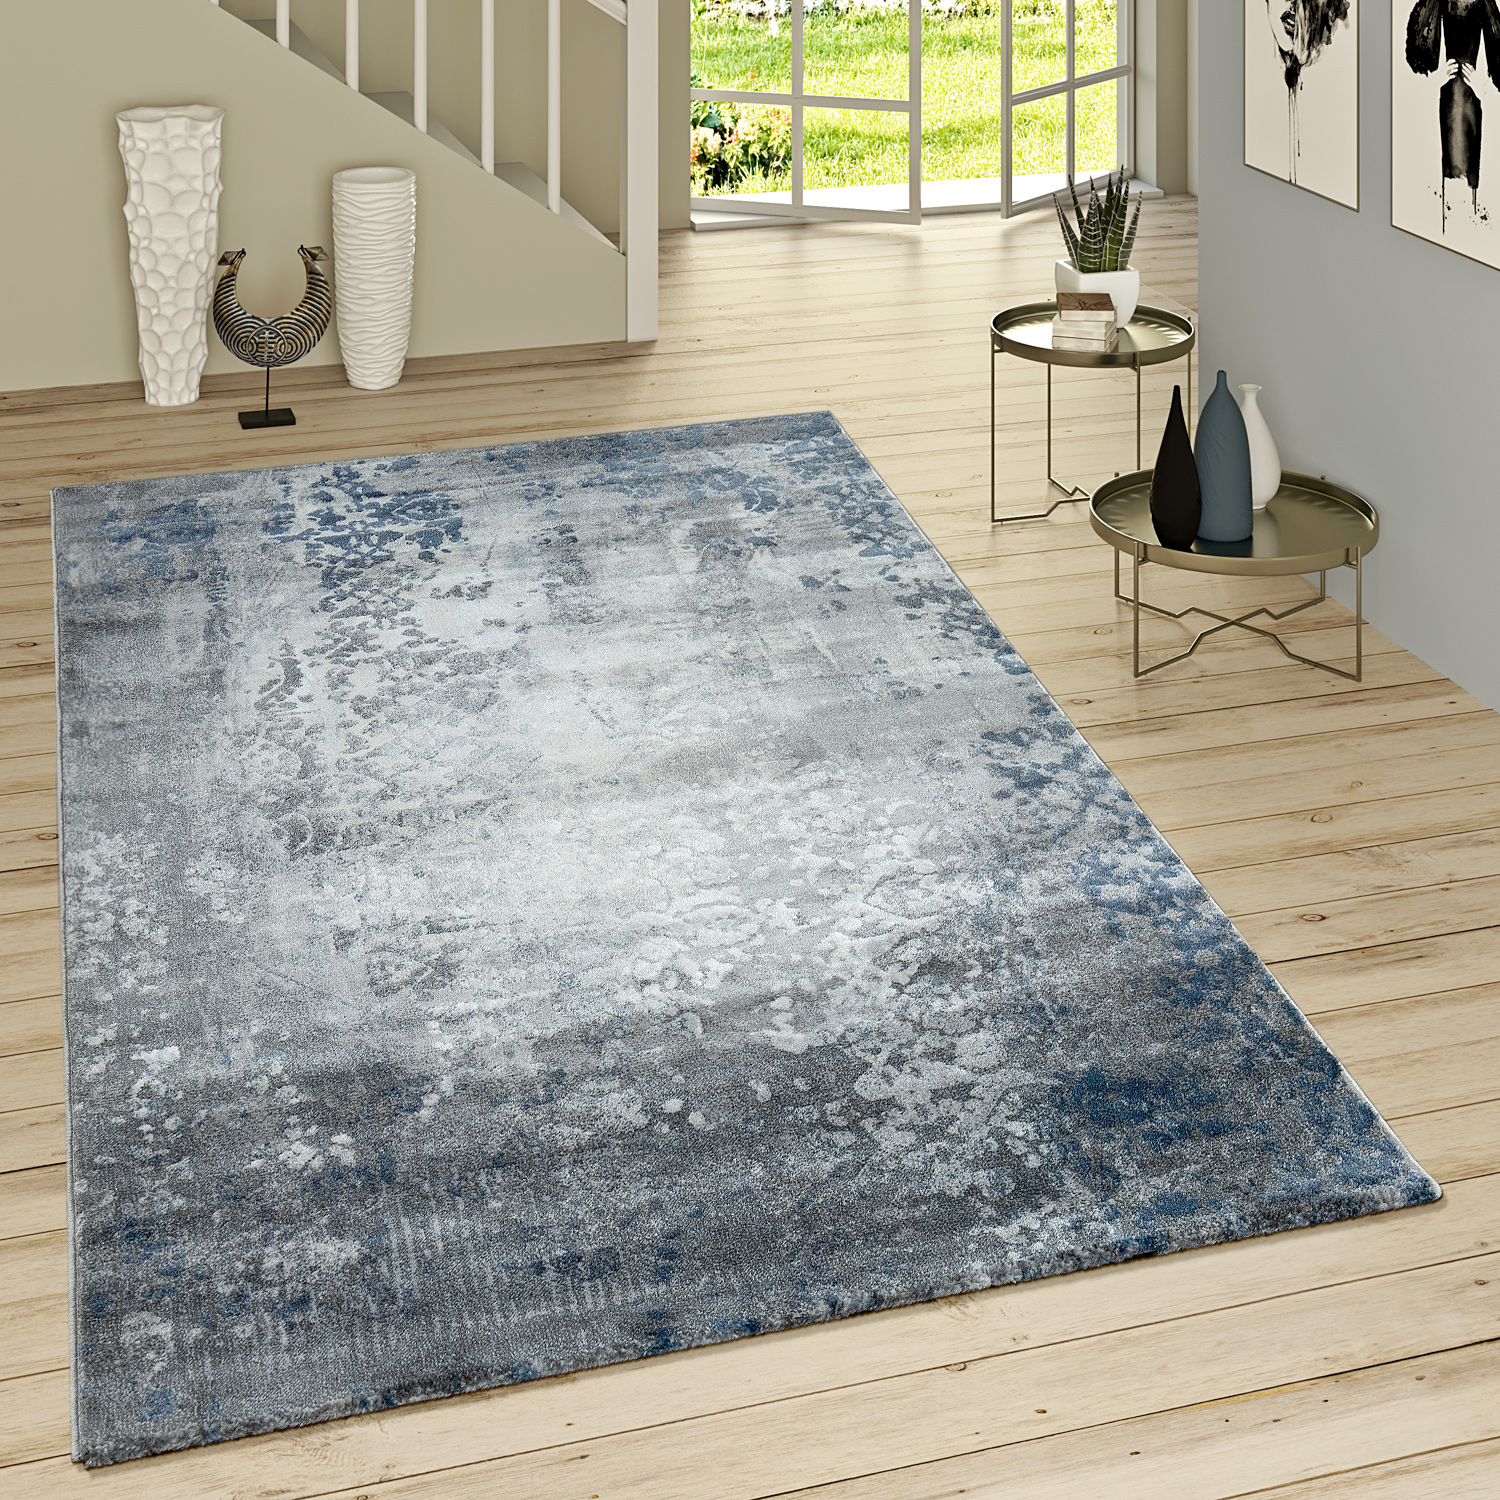 tapis poils ras moderne motif oriental gris bleu tapis tapis poil ras. Black Bedroom Furniture Sets. Home Design Ideas